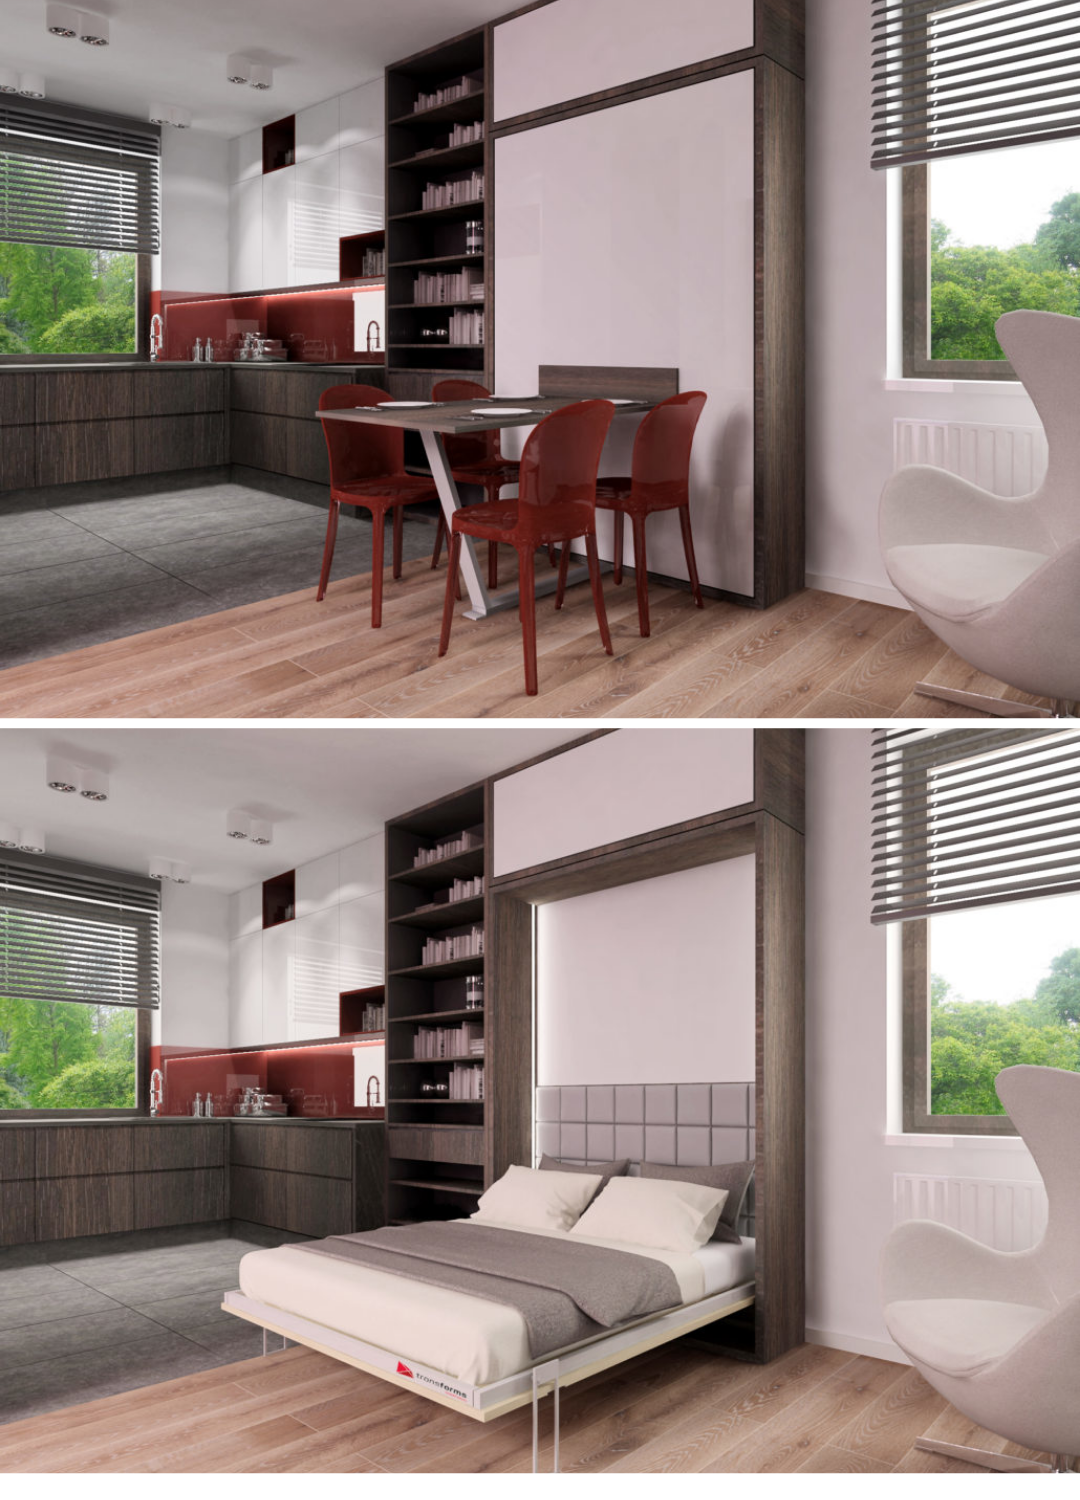 Pin By Martin Vrana On Smart Bedroom Furniture Design Space